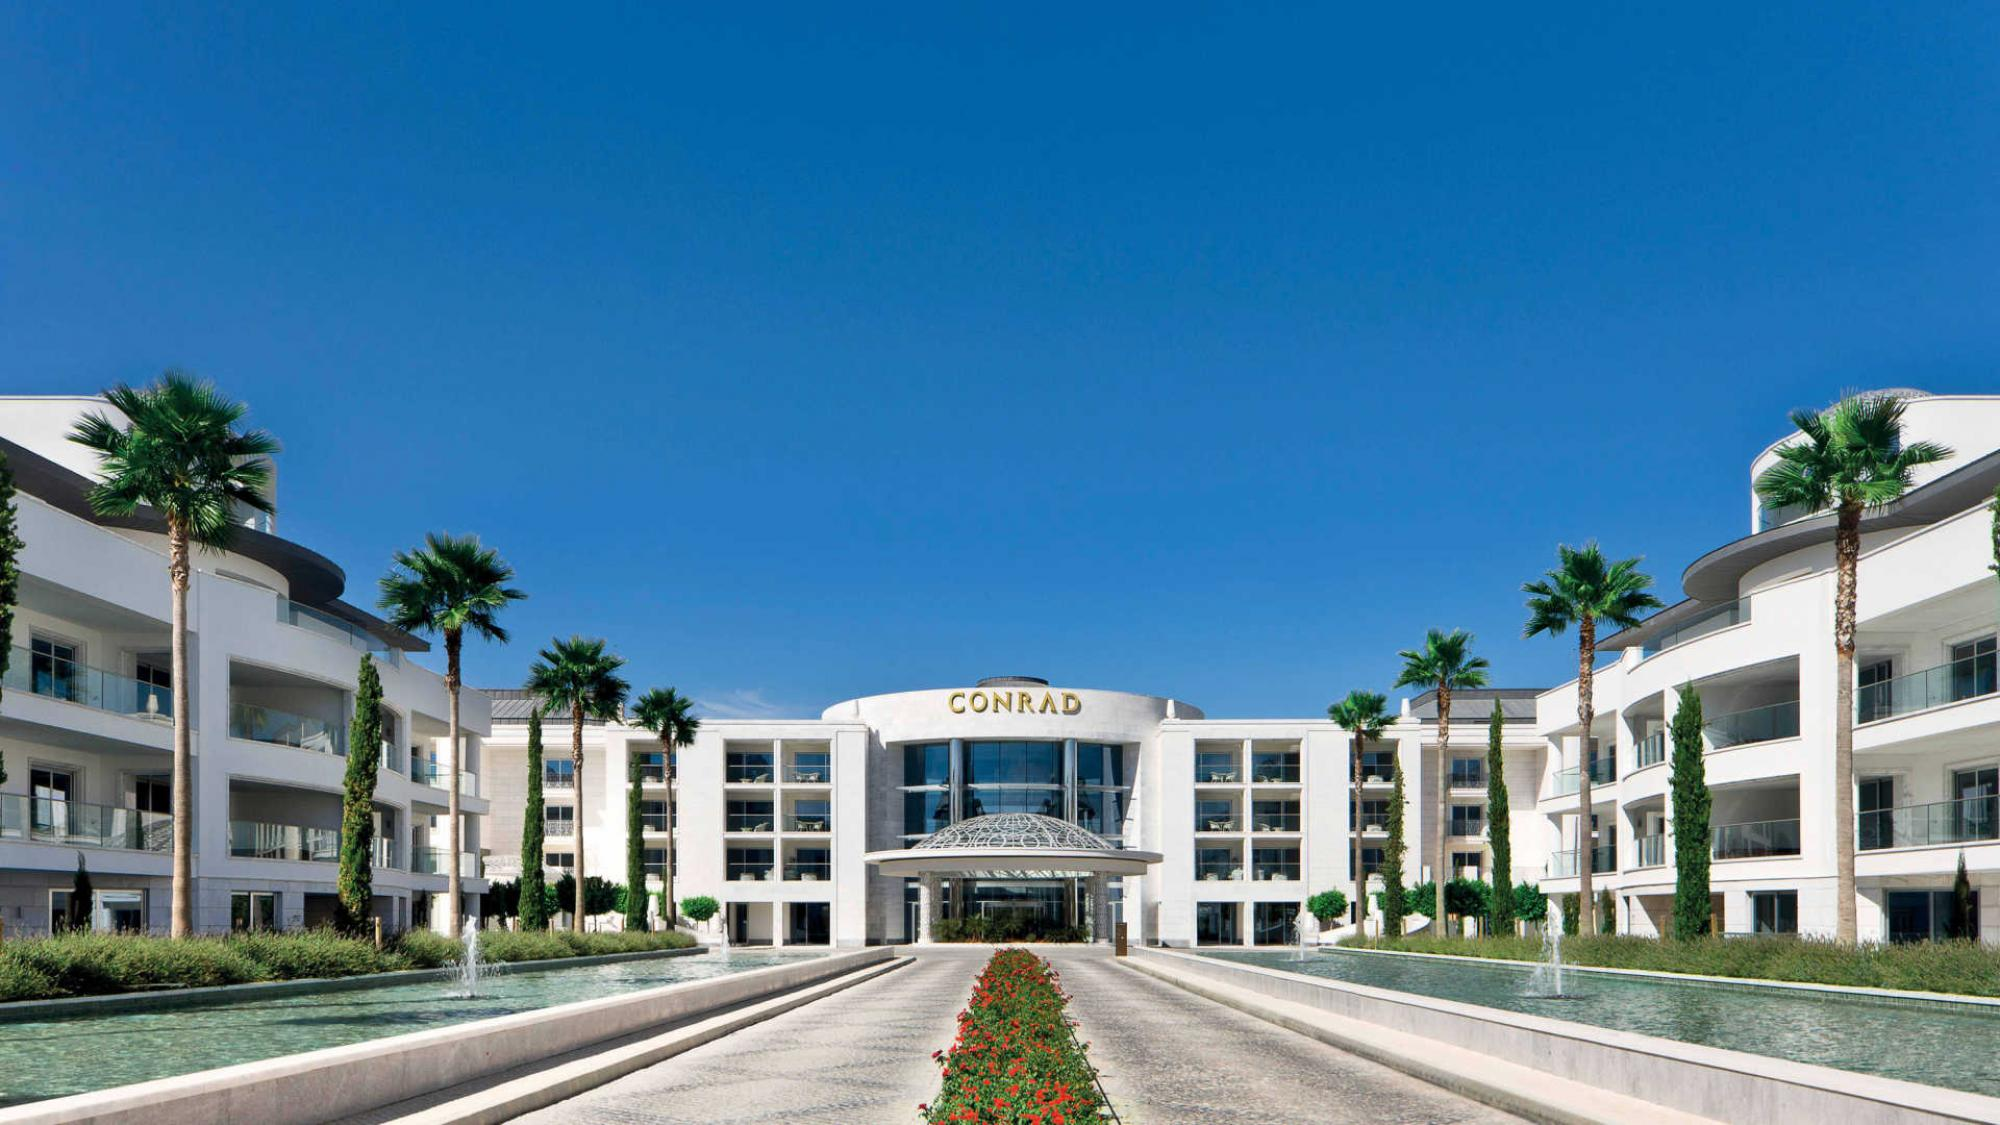 The Conrad Algarve 's impressive entrance situated in gorgeous Algarve.